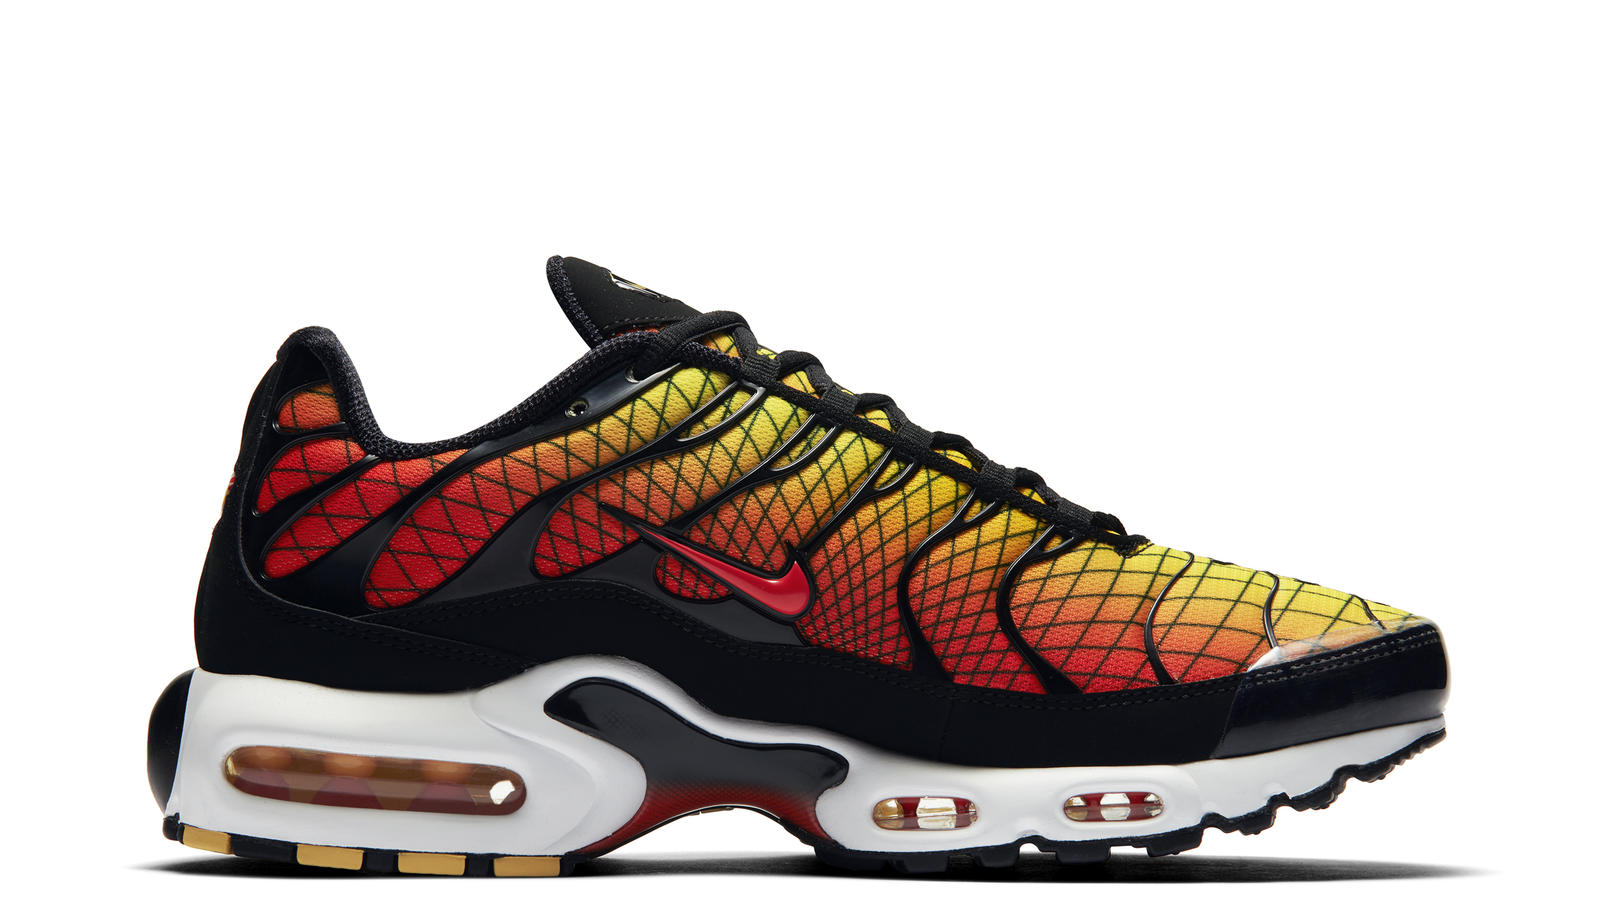 Air Max Plus Greedy 2